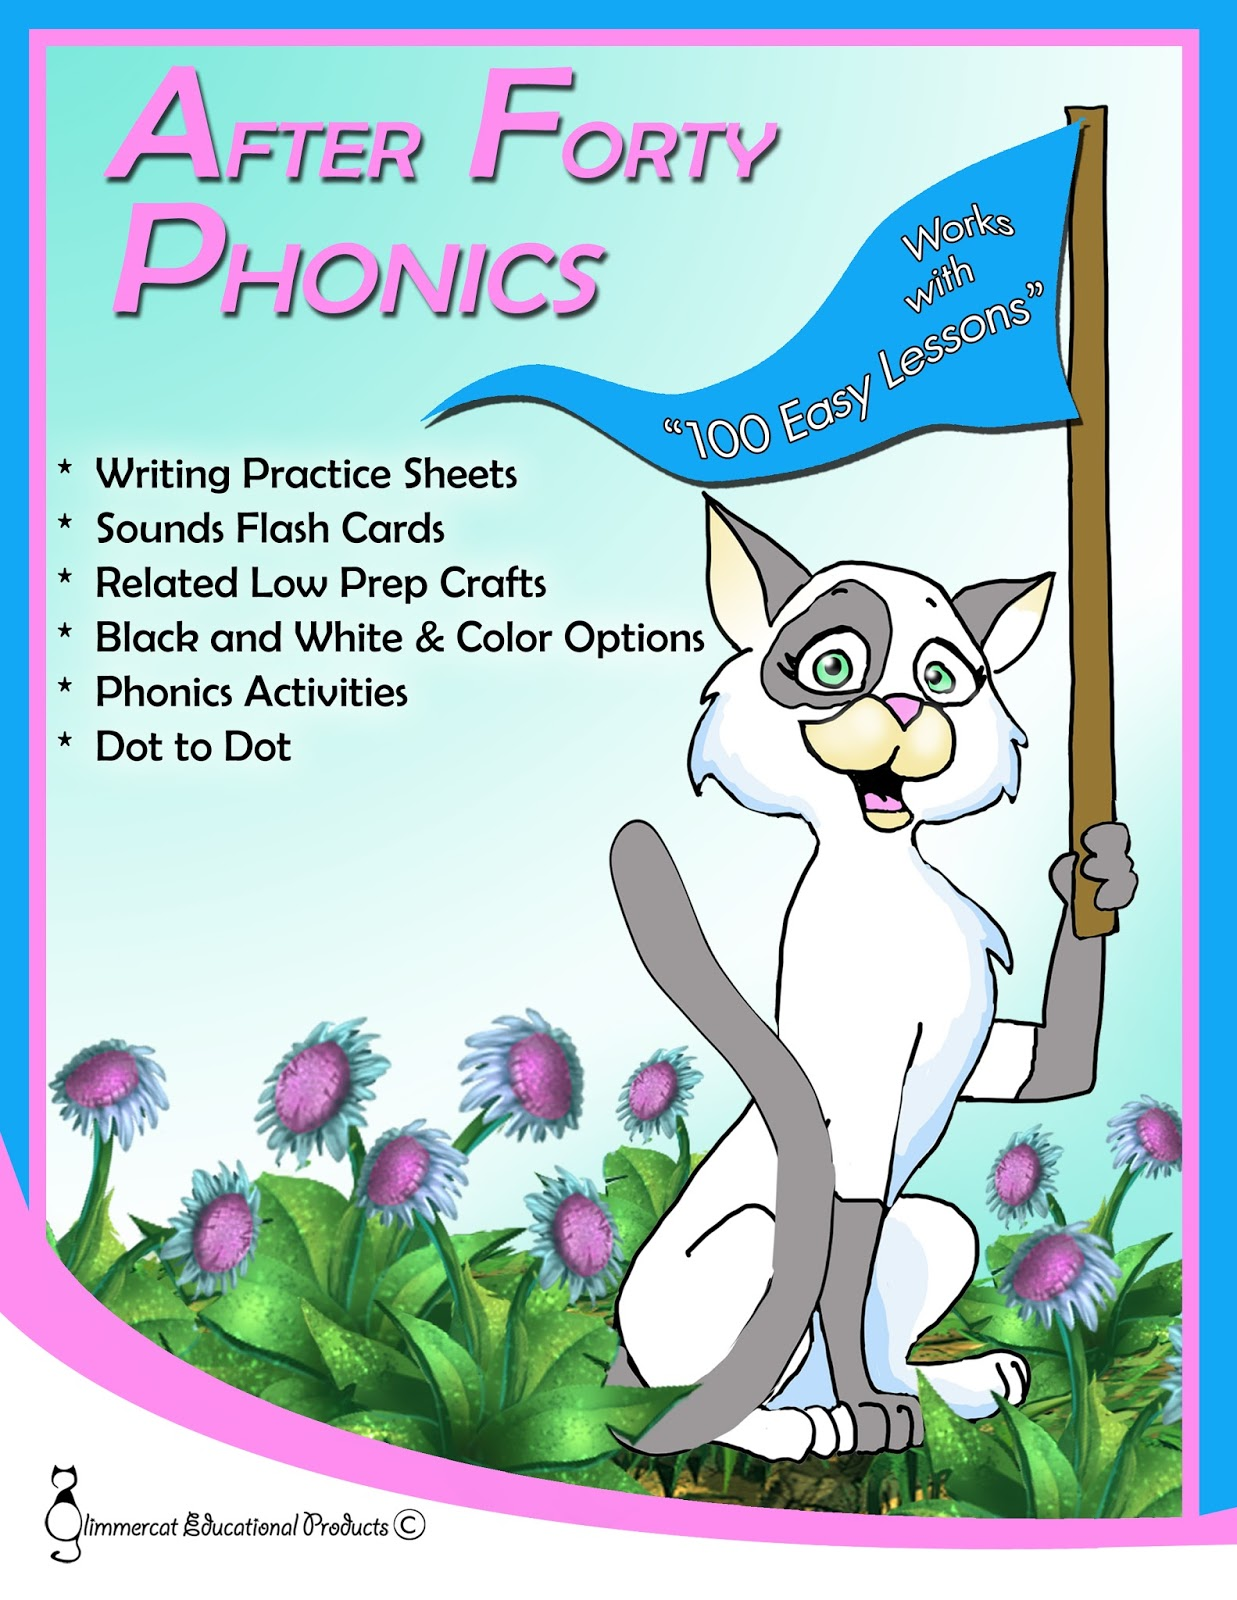 Worksheet Online Phonics Programs Free worksheet free phonics program mikyu glimmercat after 40 is for this not a stand alone